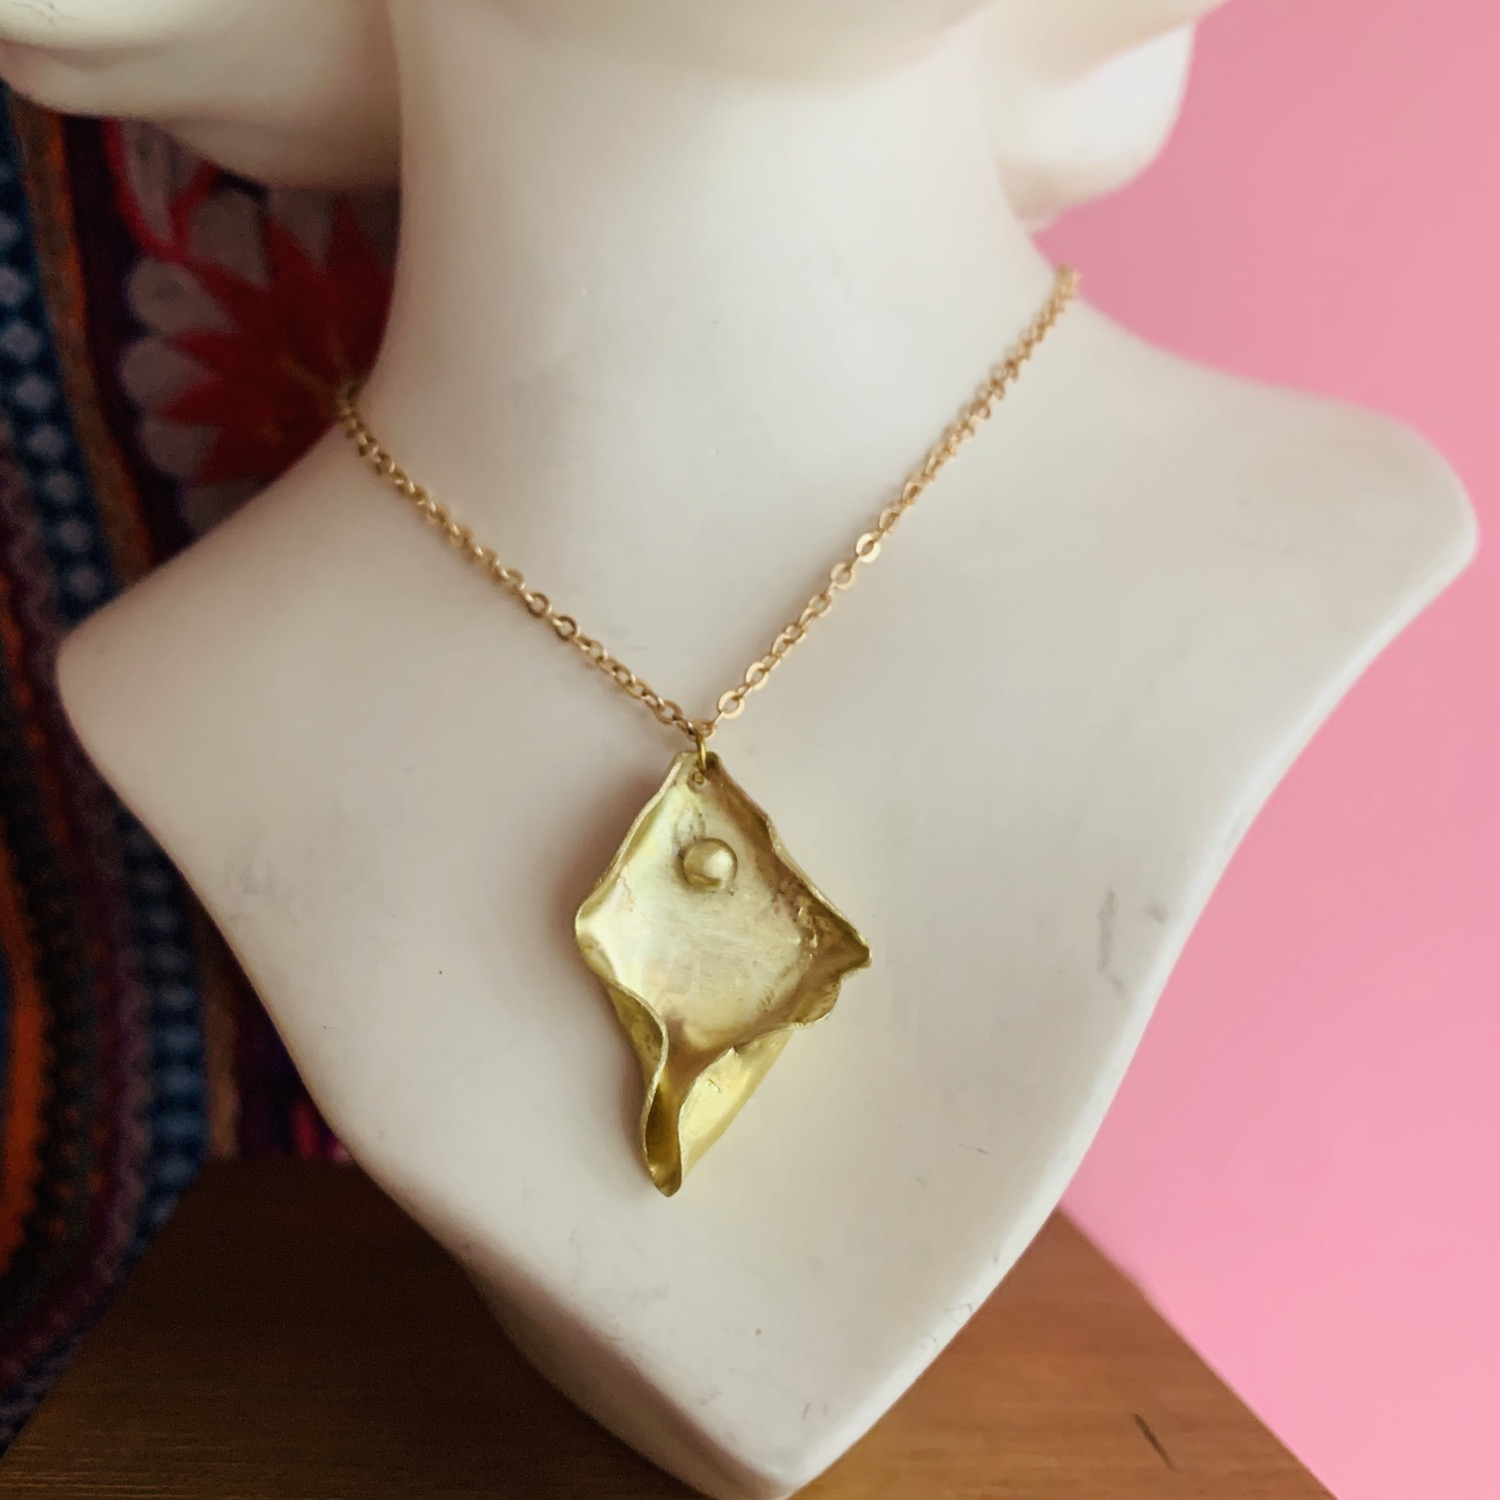 Thumbnail: Golden pussy necklace